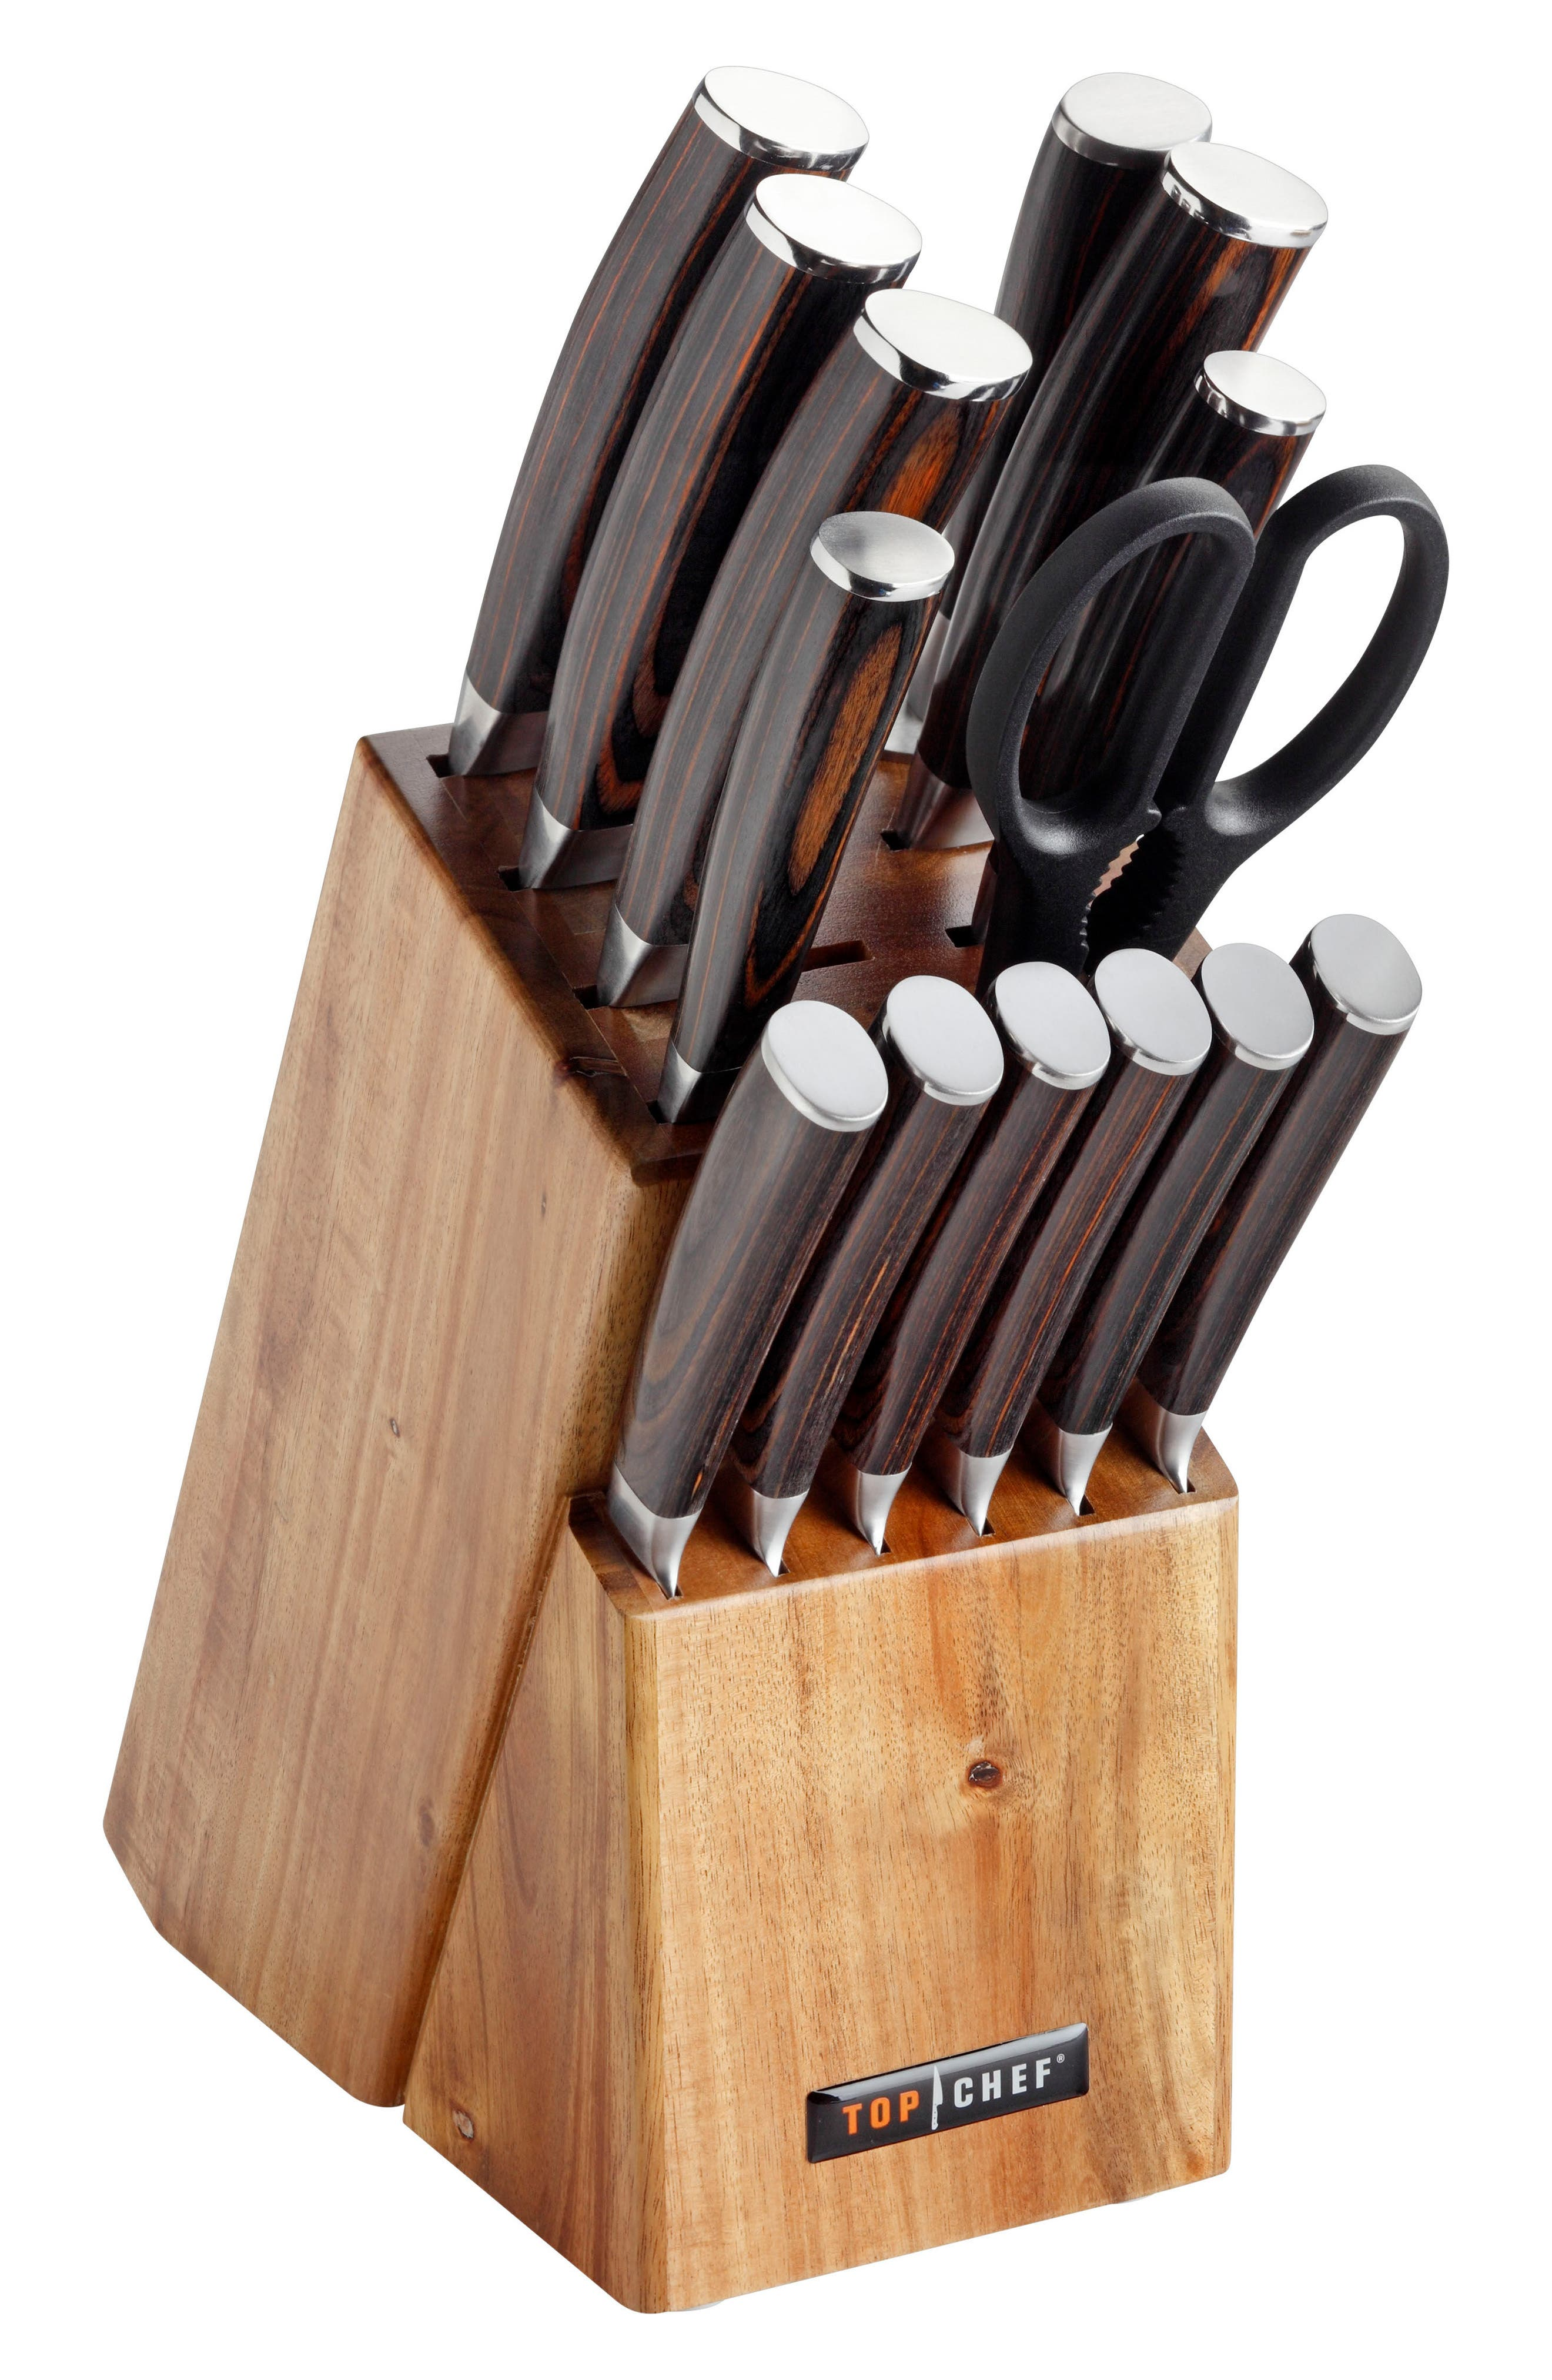 TOP CHEF Dynasty 15-Piece Knife Block Set